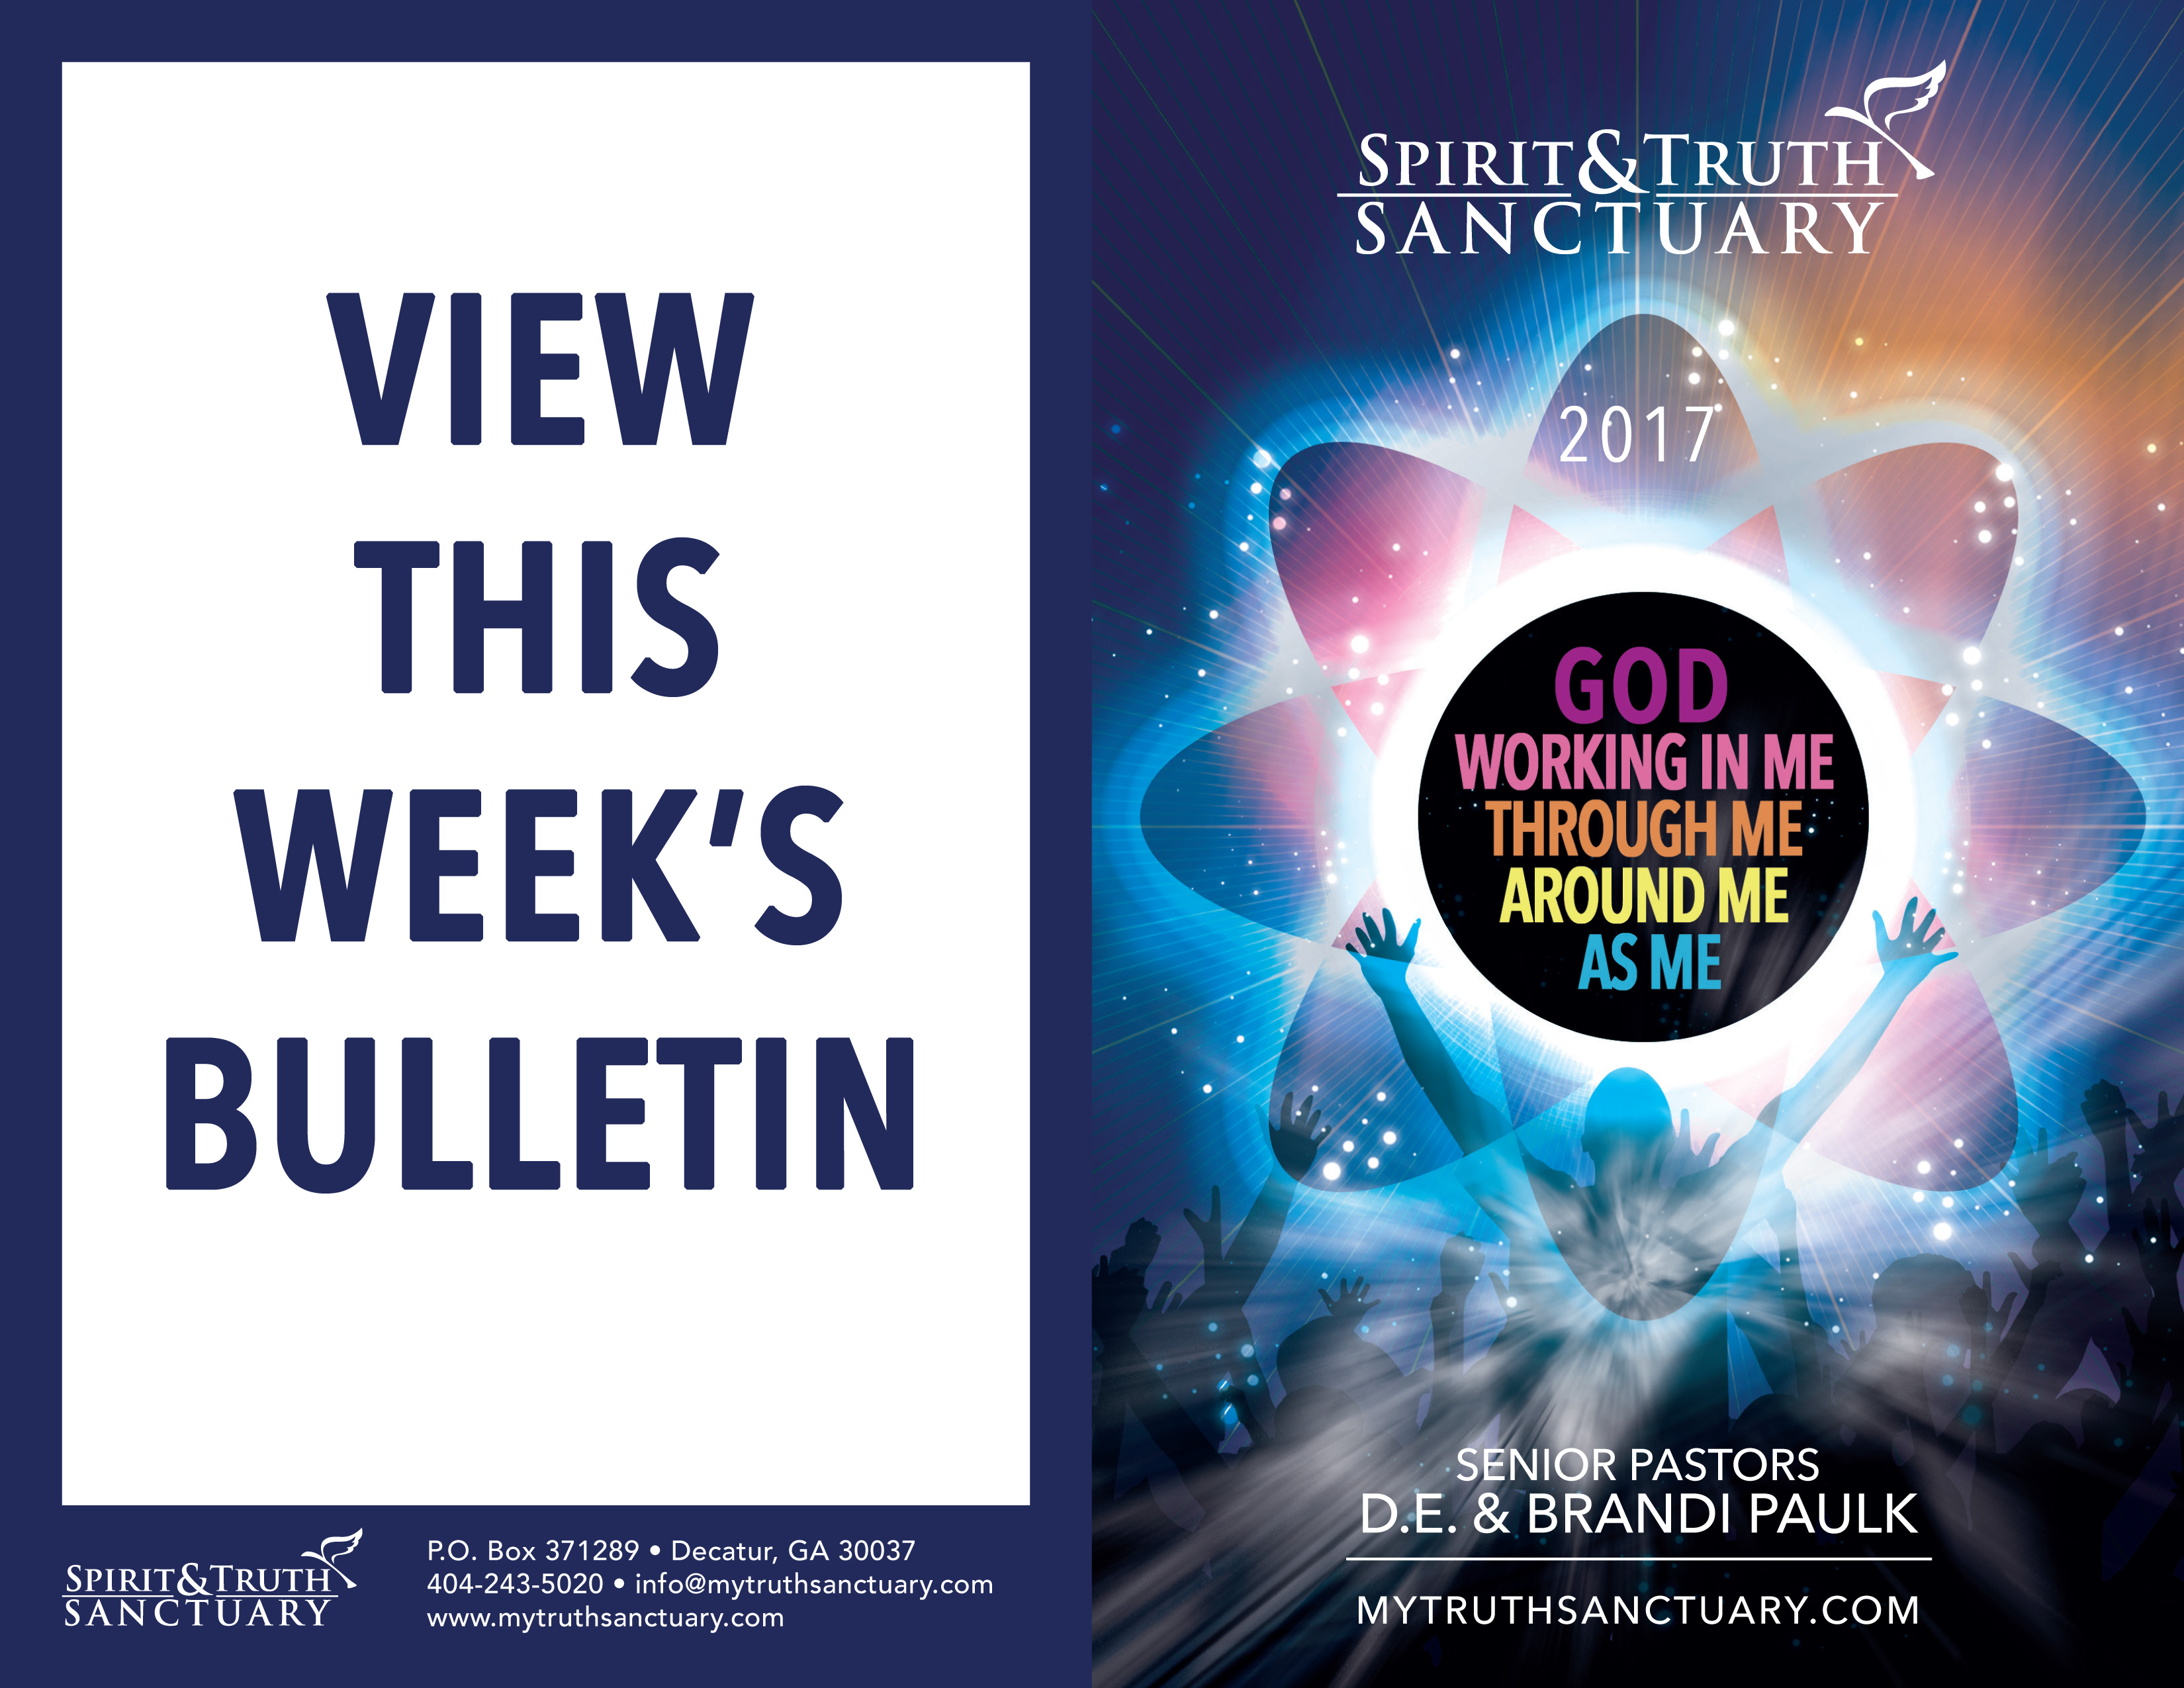 View This Week's Bulletin